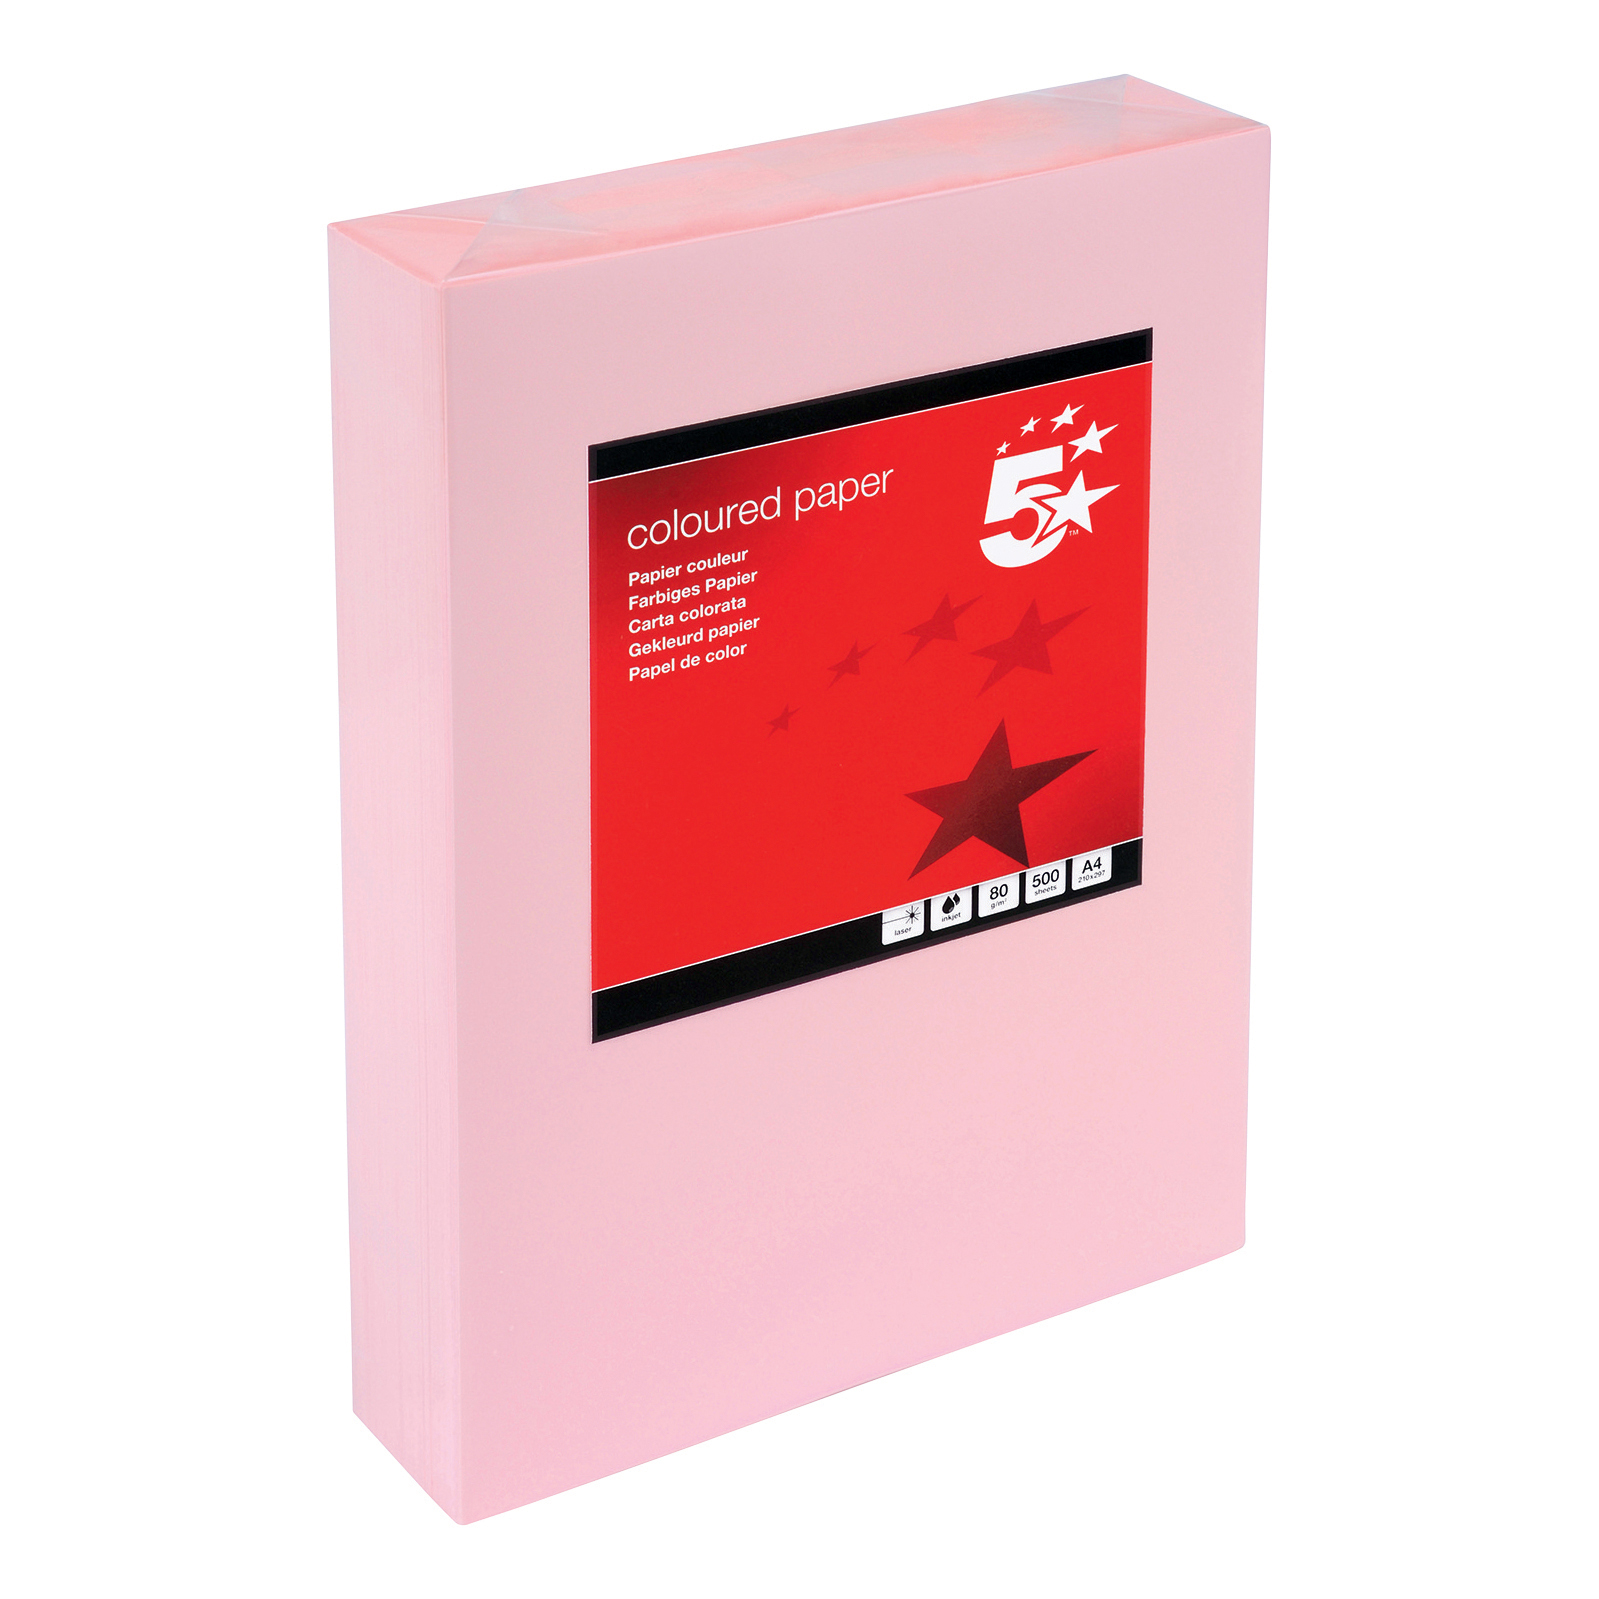 5 Star Office Coloured Copier Paper Multifunctional Ream-Wrapped 80gsm A4 Light Pink [500 Sheets] VD2019